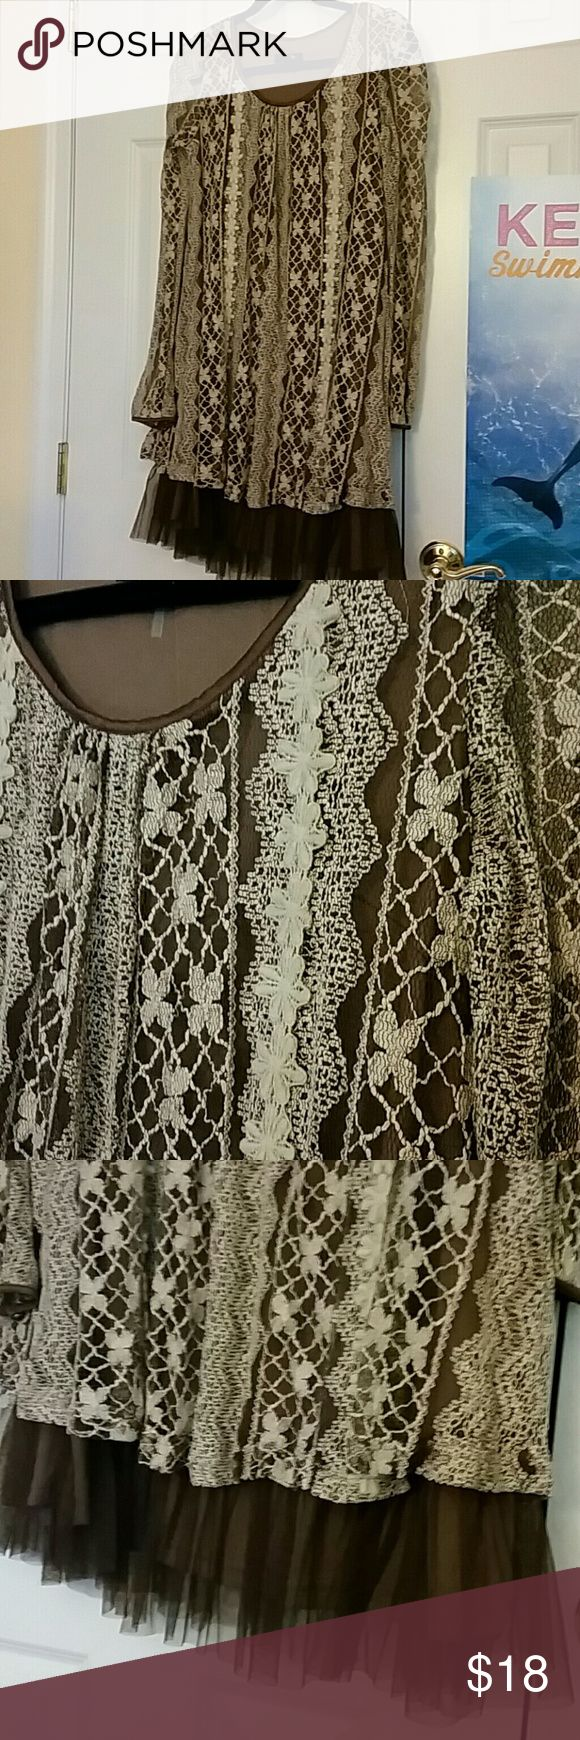 Lace dress with tulle trim, modcloth Adorable lace dress, flapper-esque. Like new- only worn once. Brown with cream/light tan lace. The body is lined in a brown comfy jersey fabric. Back is embellished with adorable satin bows, as pictured. Looks great layered with pearl necklaces! Dresses Midi